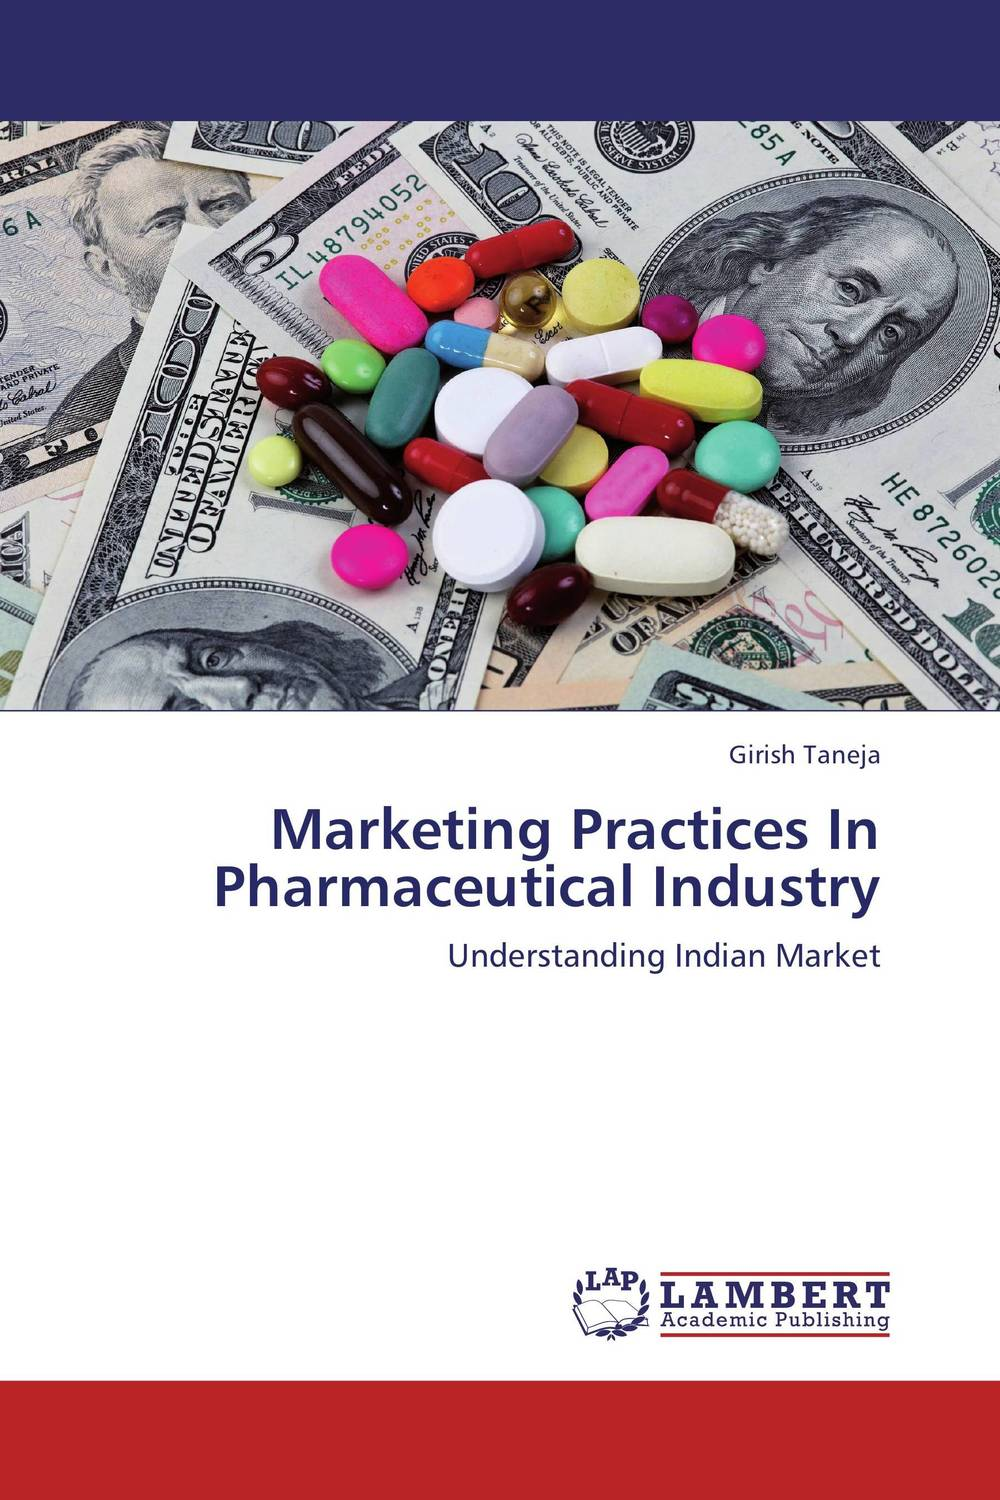 Marketing Practices In Pharmaceutical Industry